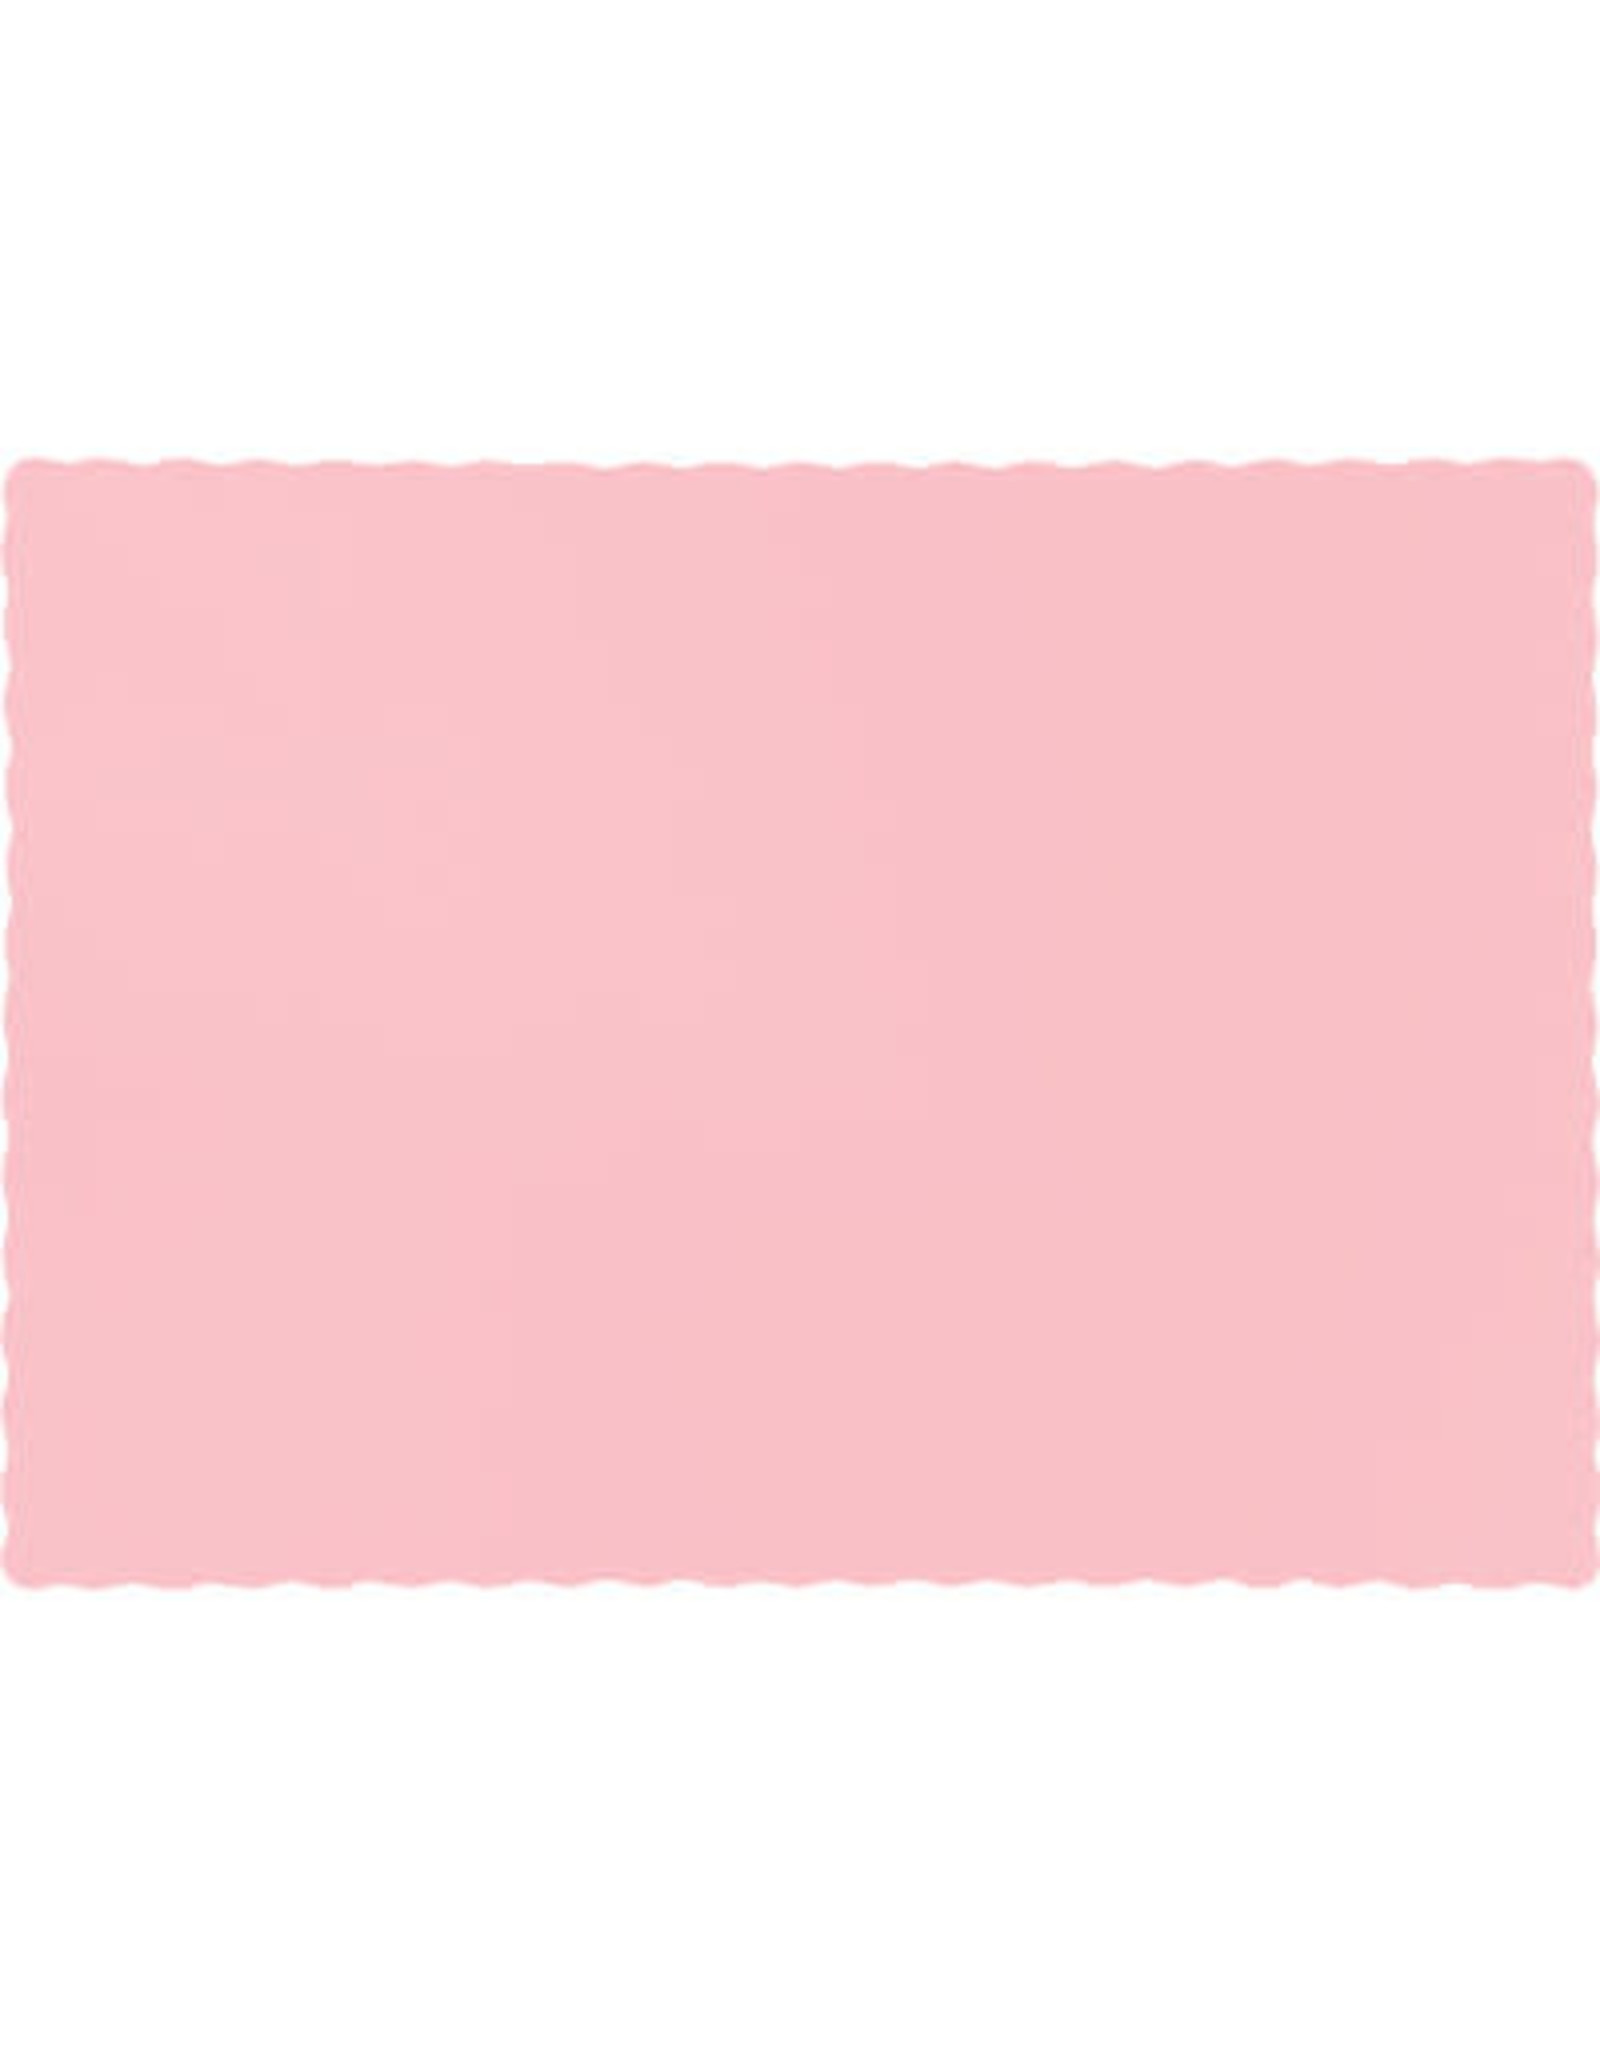 Touch of Color CLASSIC PINK PLACEMATS